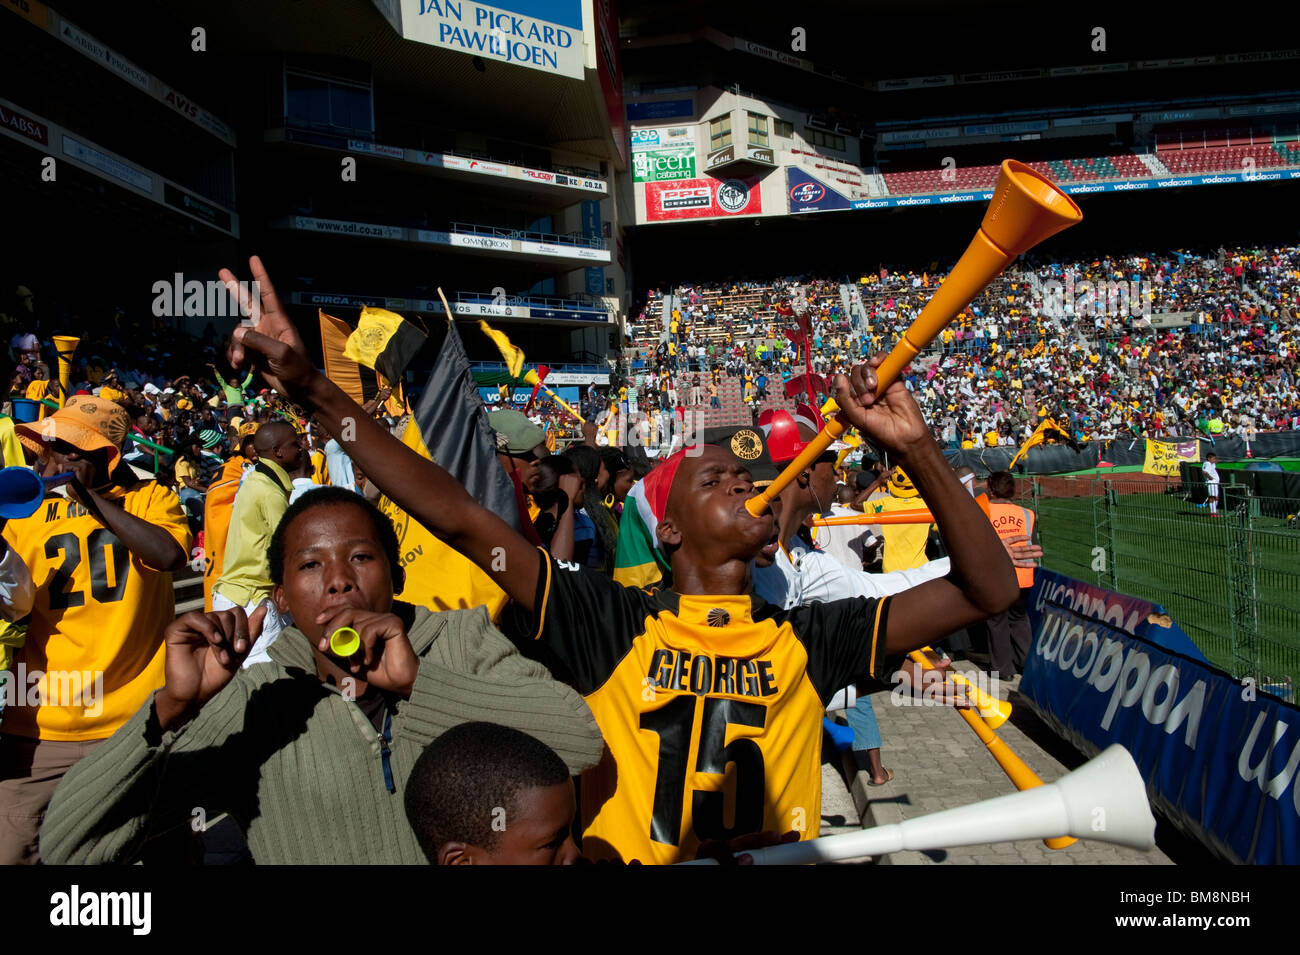 999dbe728fd Crowd scene football supporters with Vuvuzela Cape Town South Africa -  Stock Image